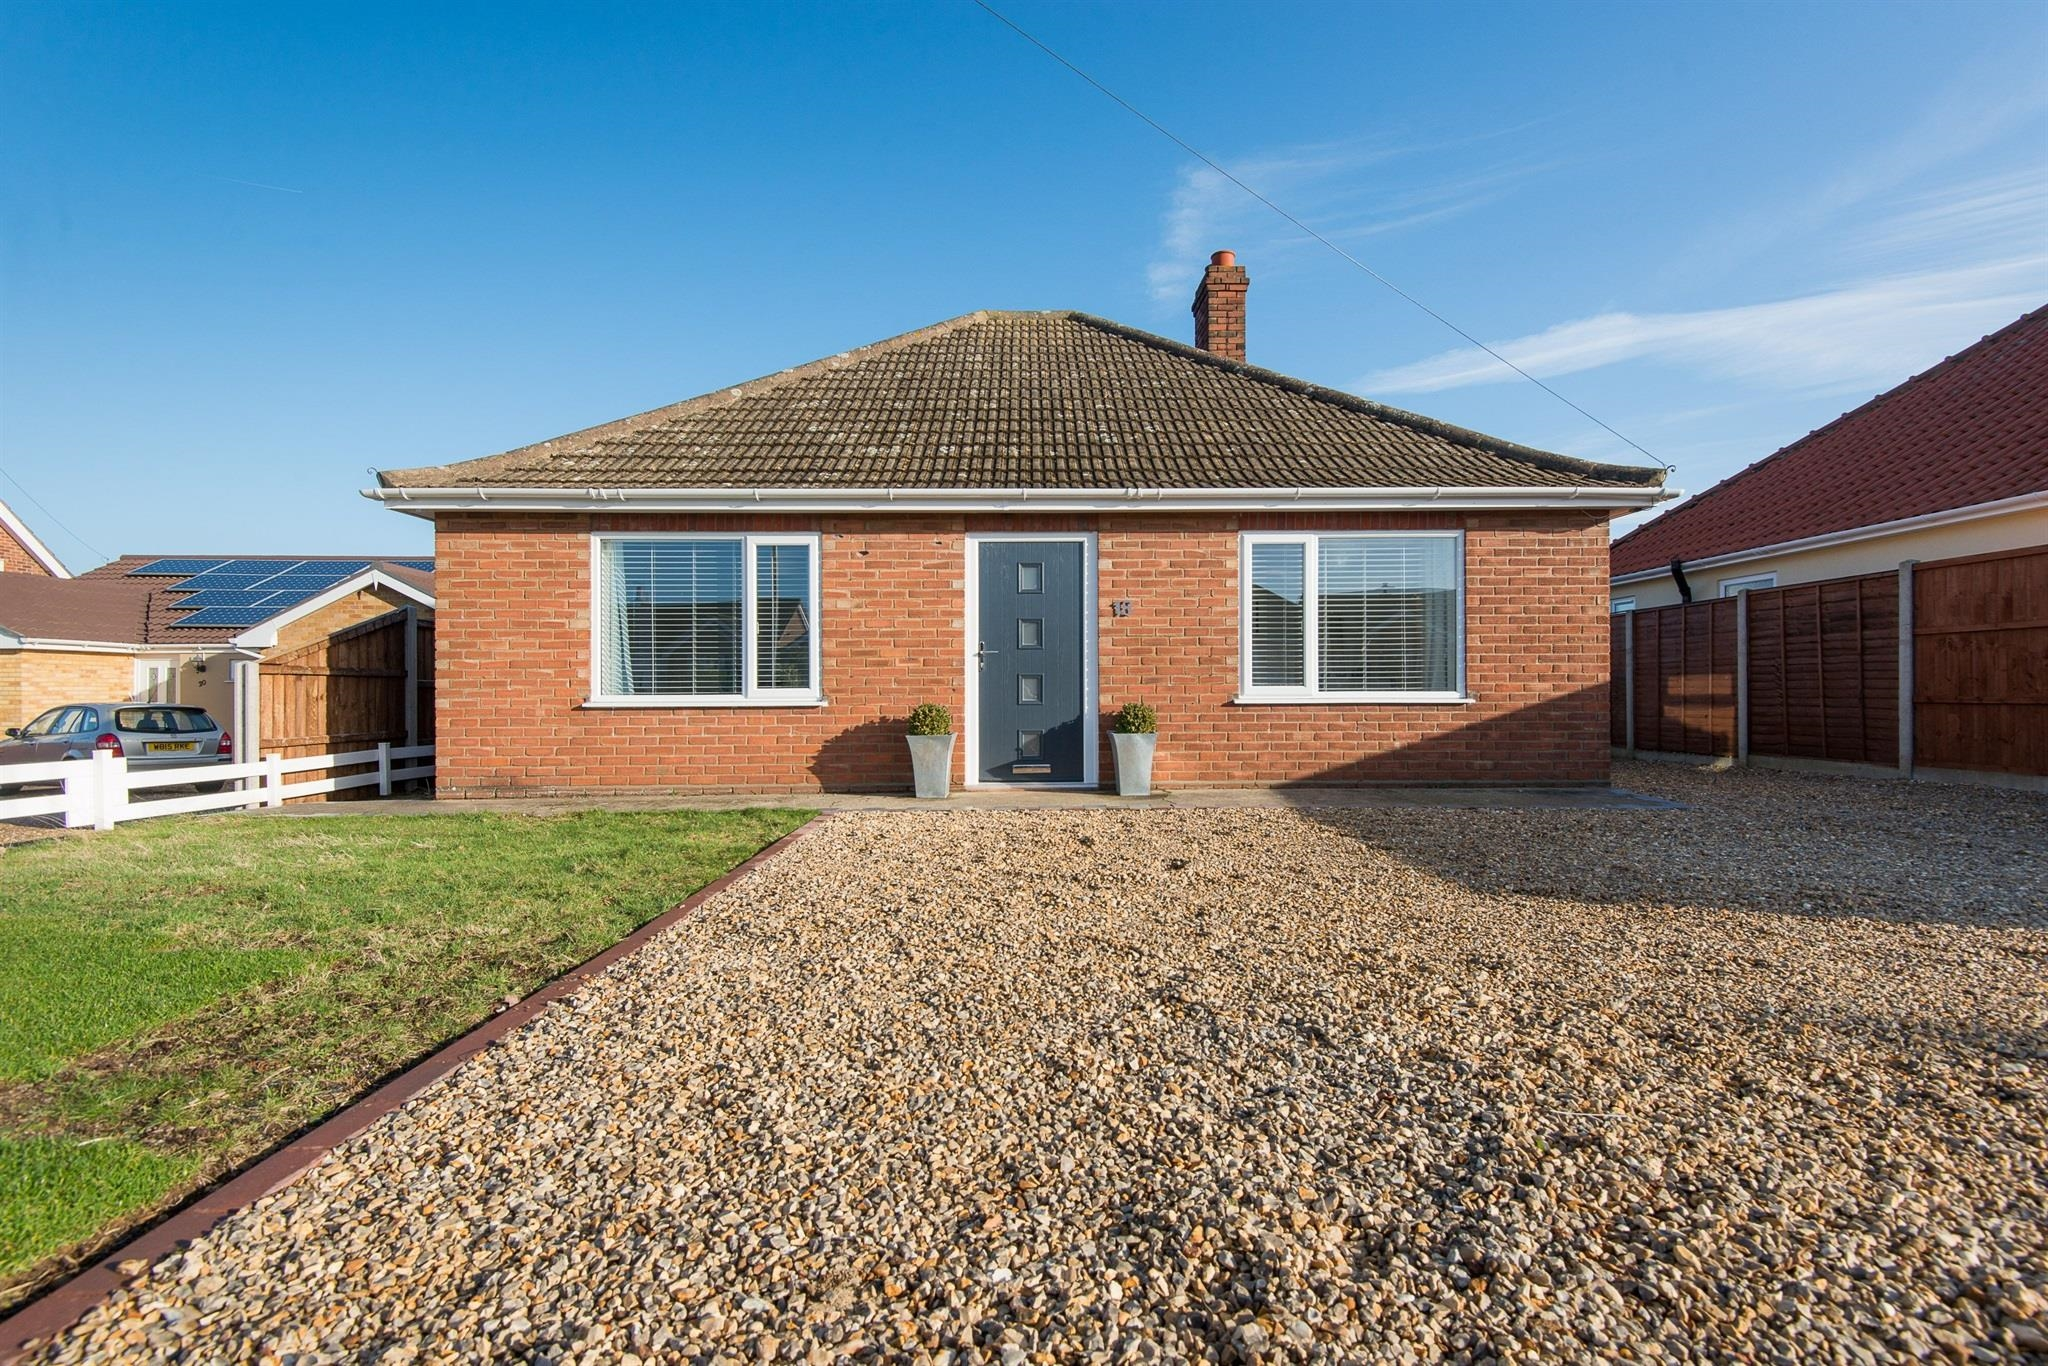 3 Bedroom Detached Bungalow For Sale Delane Road Norwich Nr8 6dl